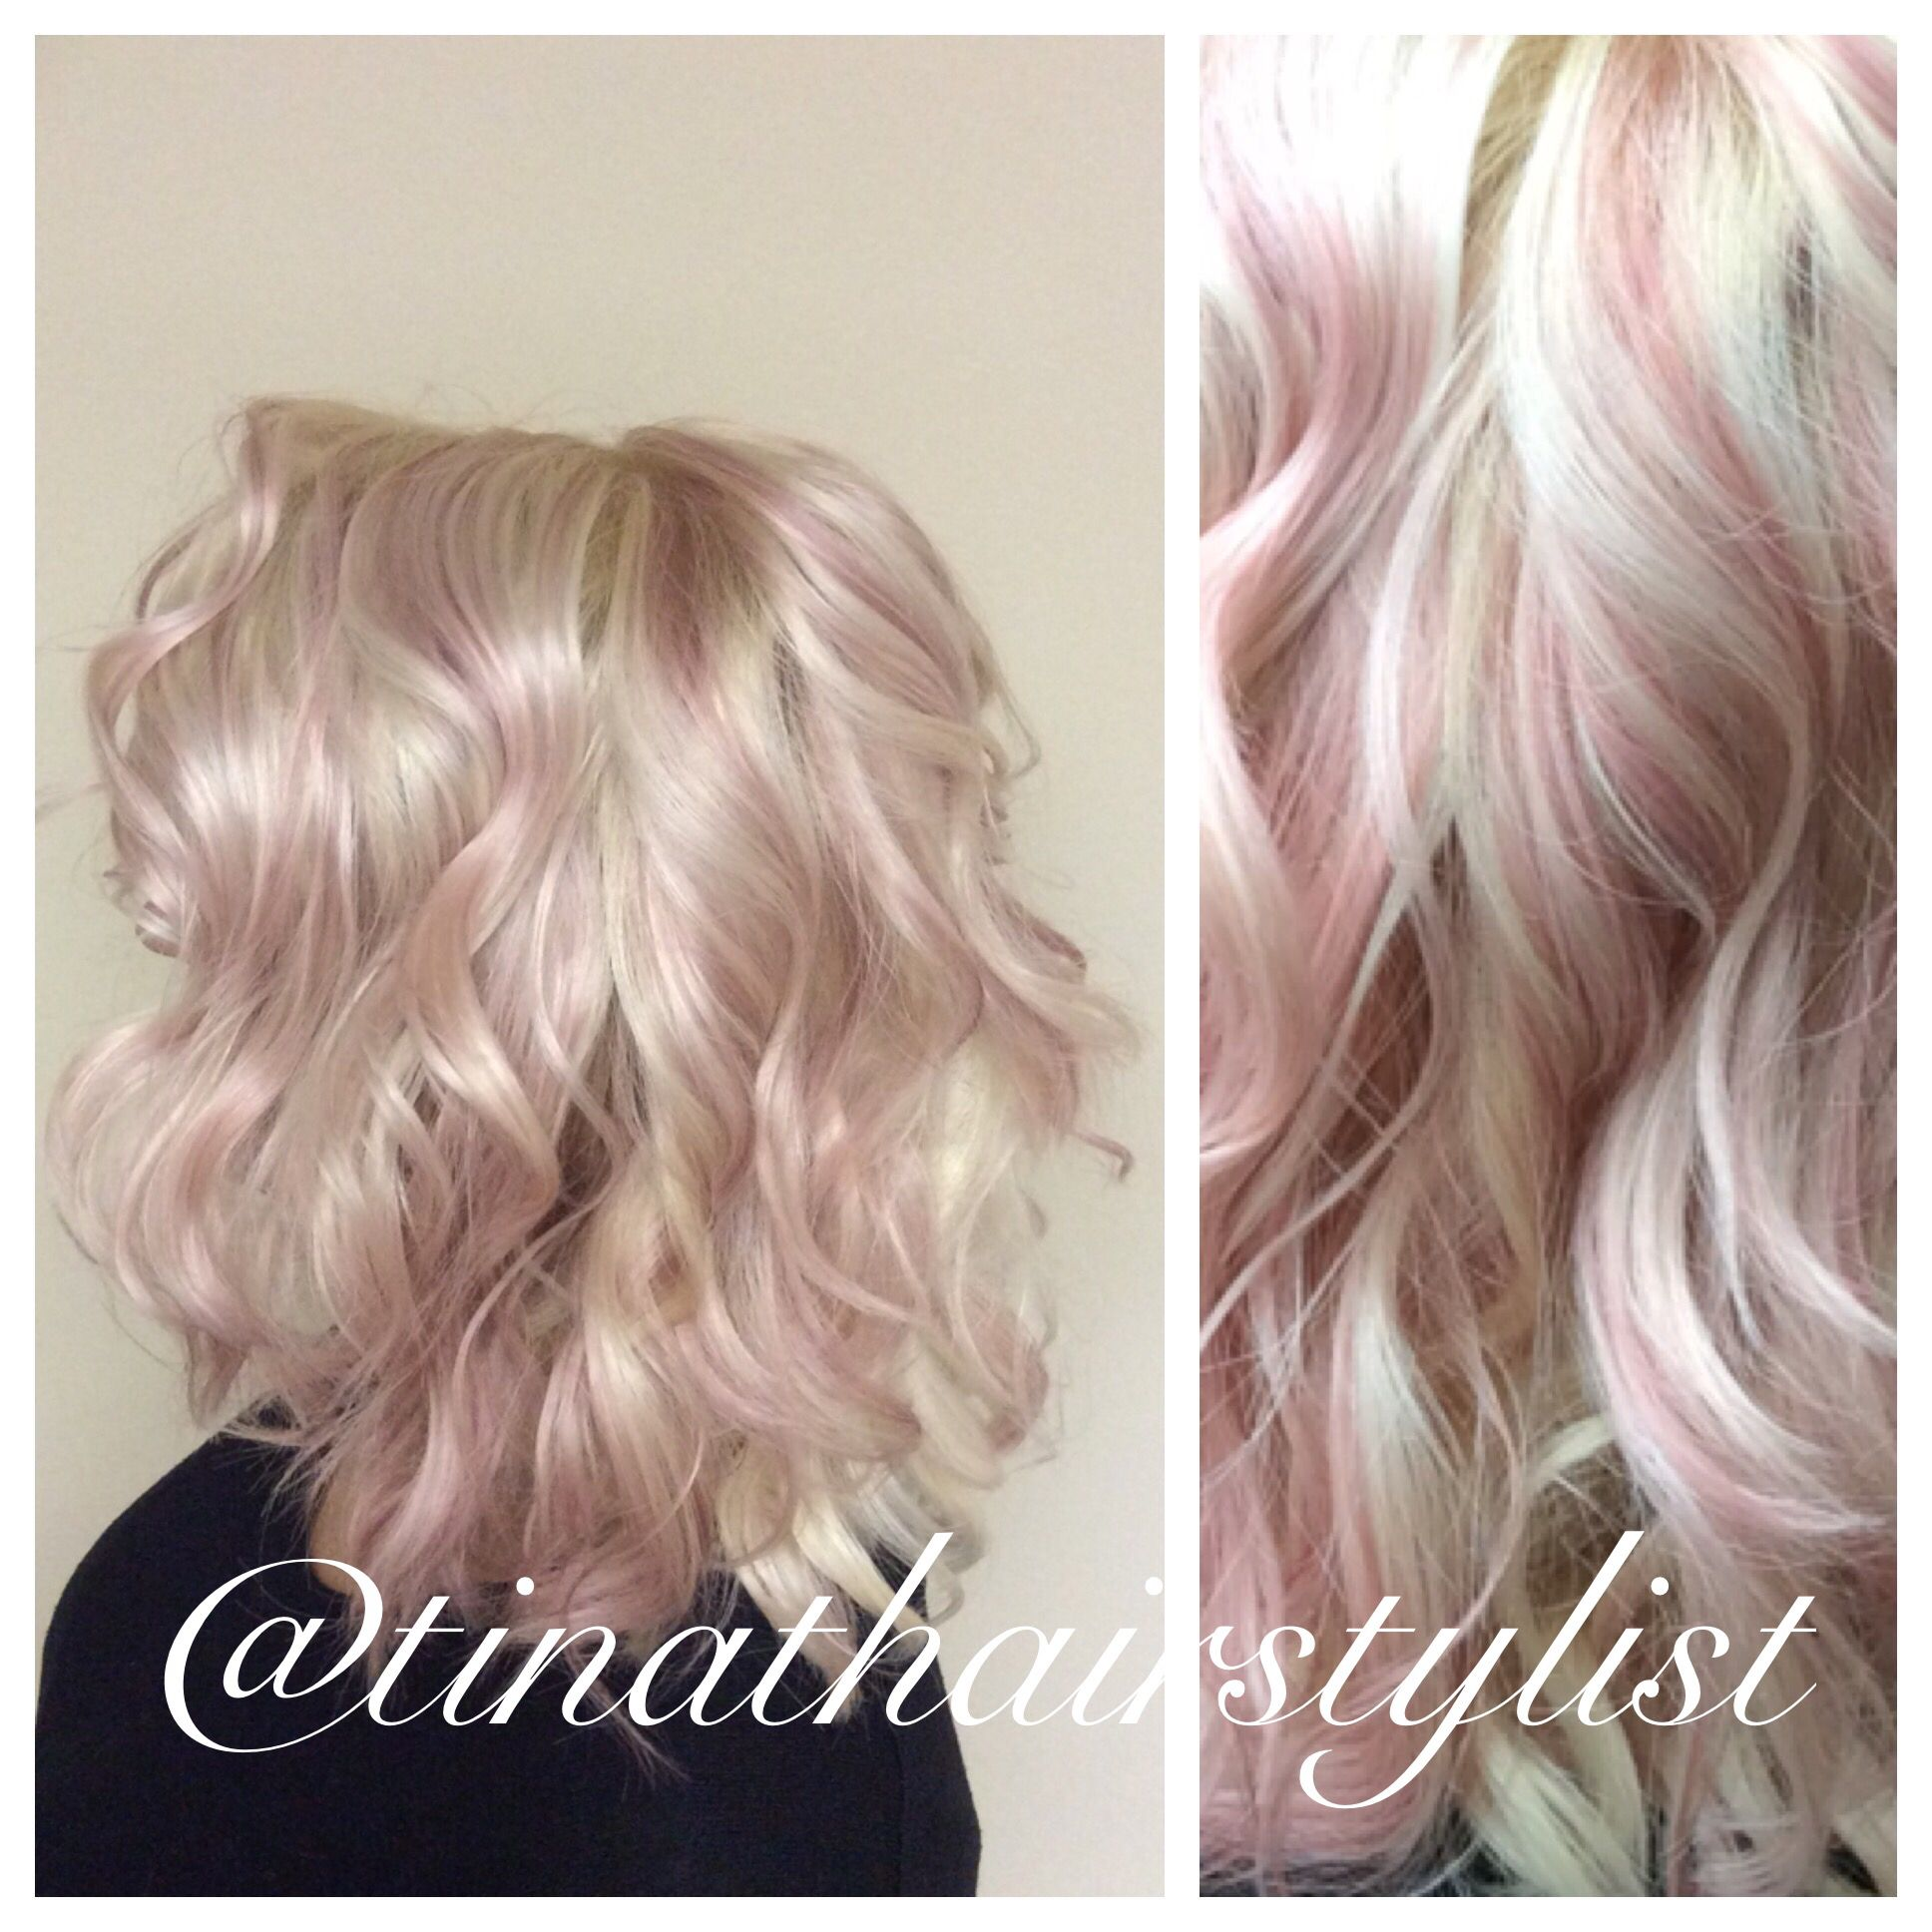 Insta tinathairstylist pastel pink dream highlights curly hair insta tinathairstylist pastel pink dream highlights curly hair beach waves platinum pmusecretfo Choice Image